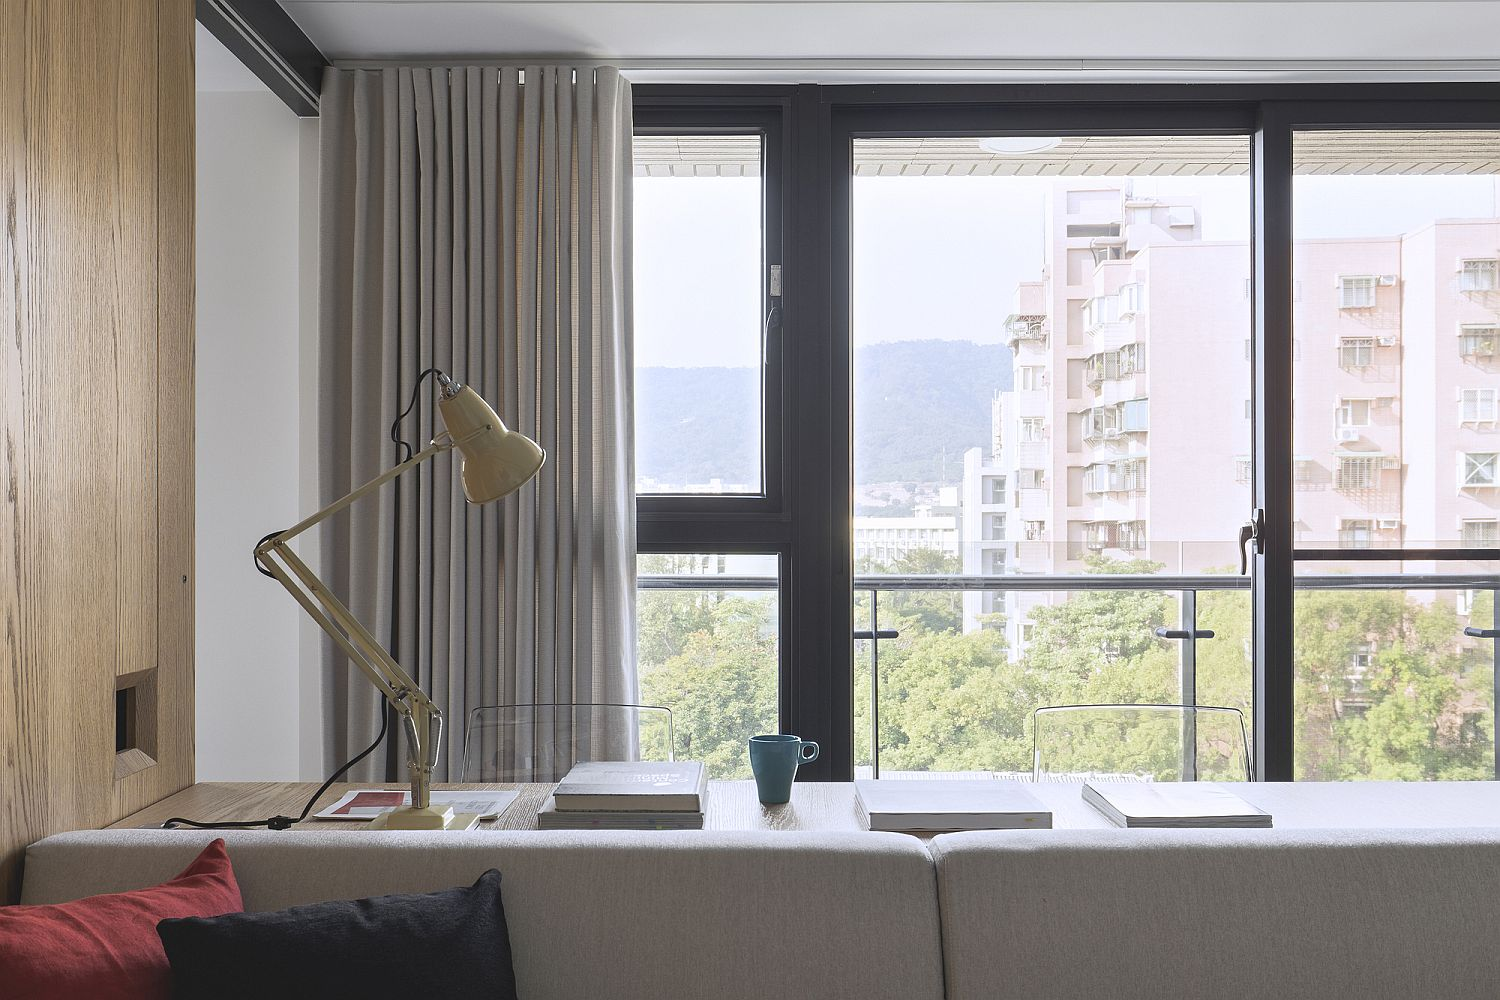 Windows and drapes usher in filtered natural light